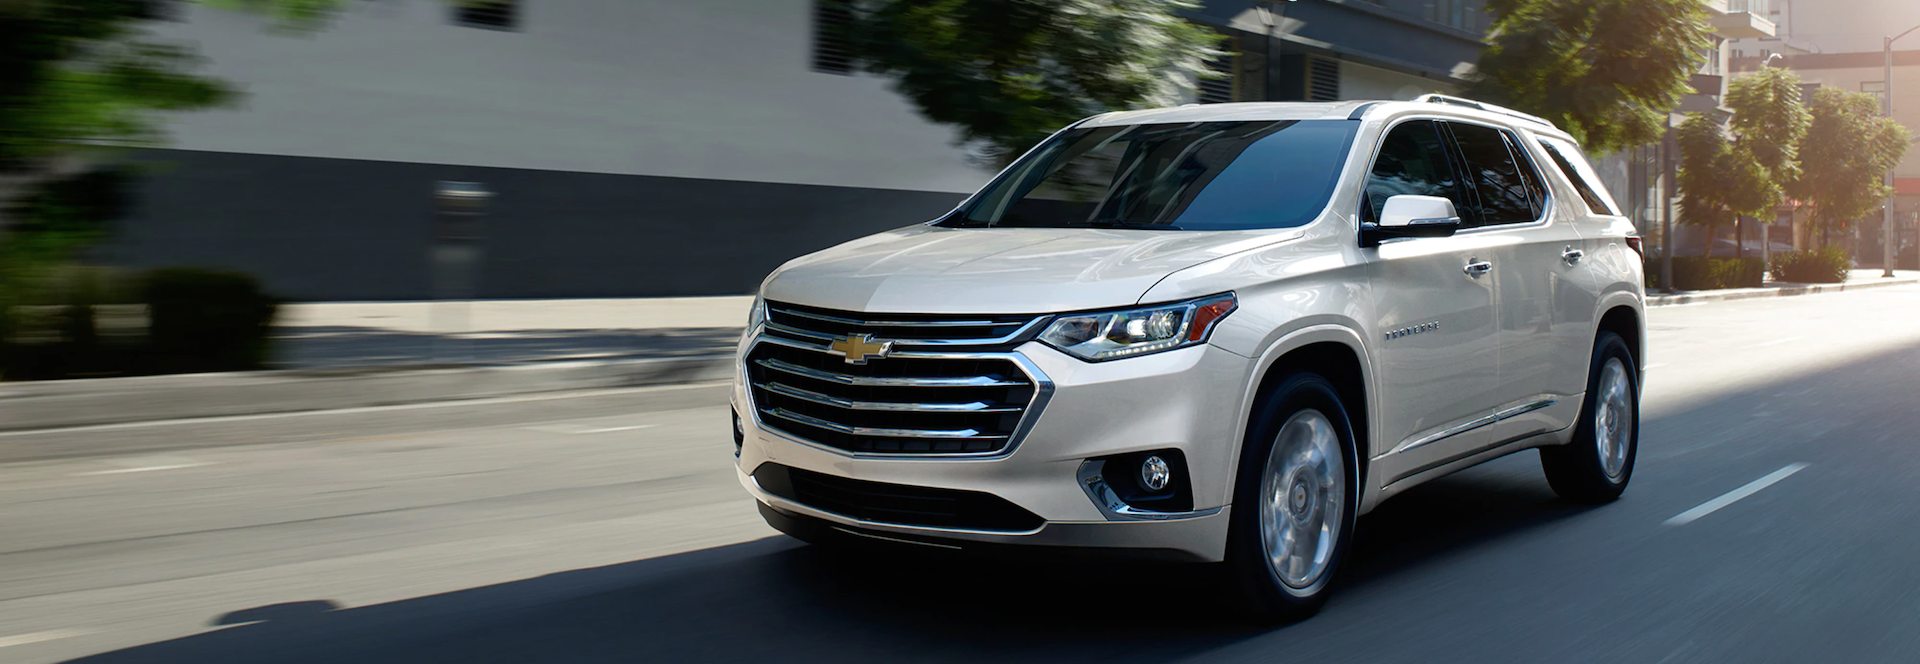 Front view picture of the New 2021 Chevy Traverse SUV